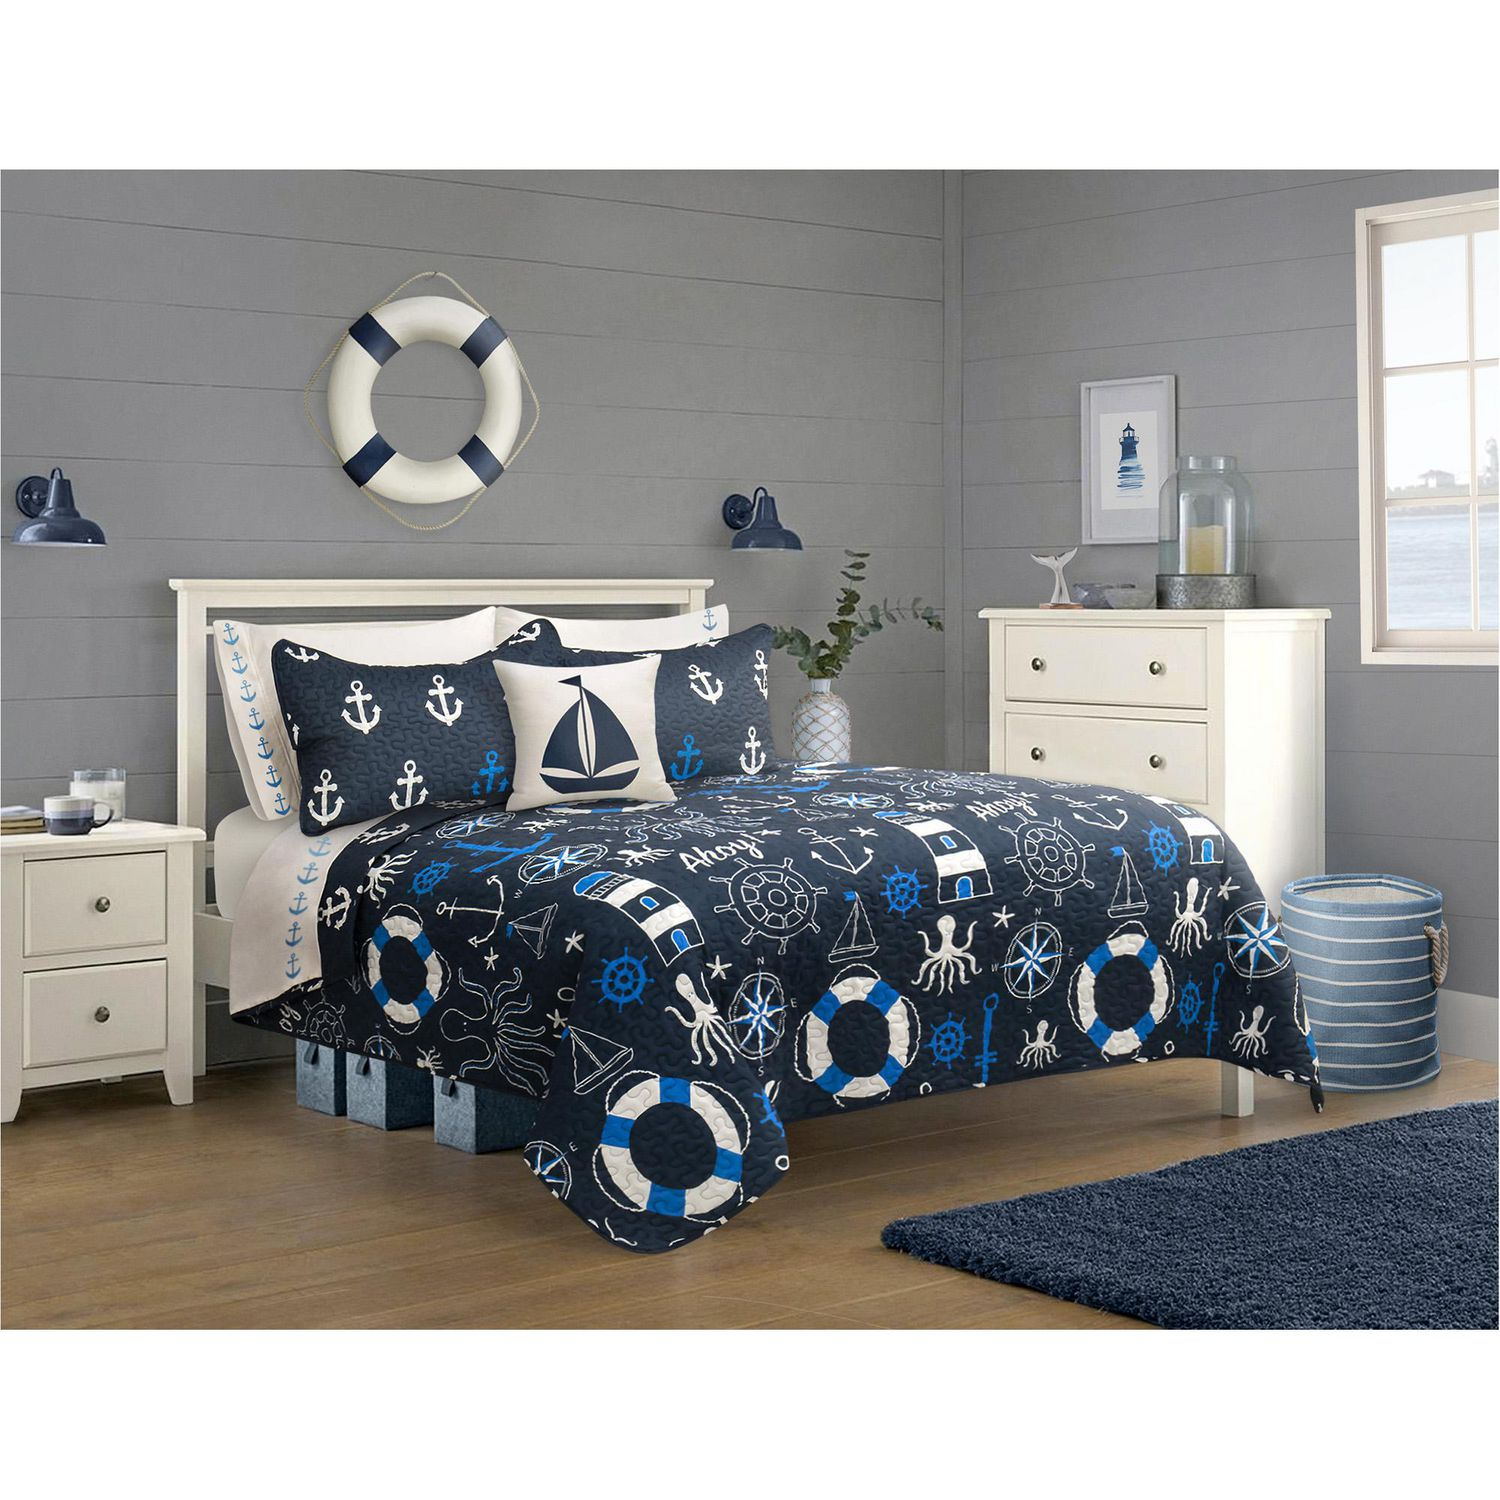 Safdie & Co. Quilt 9PC Set DQ Nautical